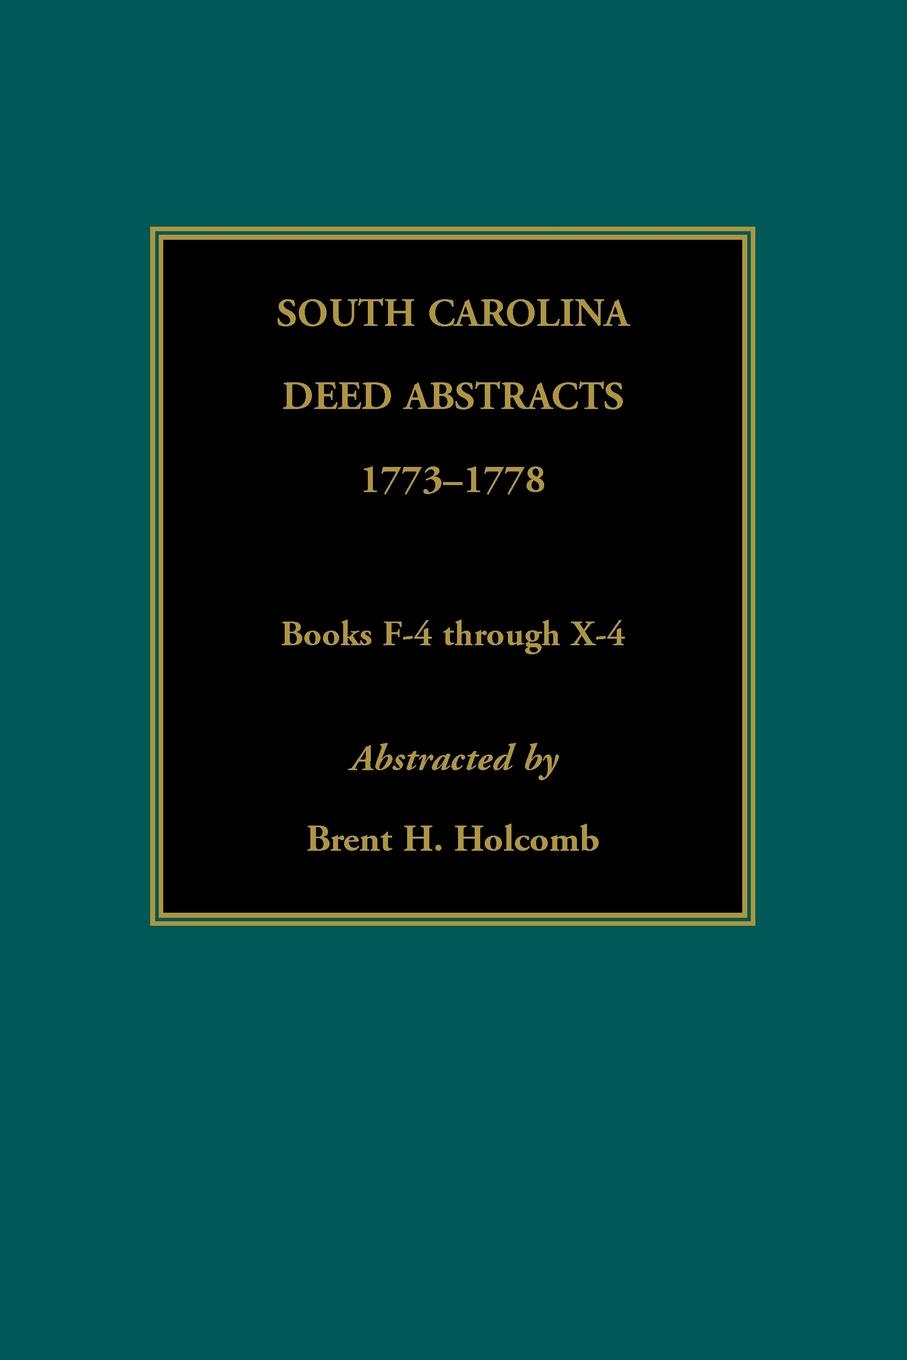 Brent Holcomb South Carolina Deed Abstracts, 1773-1778, Books F-4 through X-4 north carolina dept of conservation and development the new north carolina in the advancing south